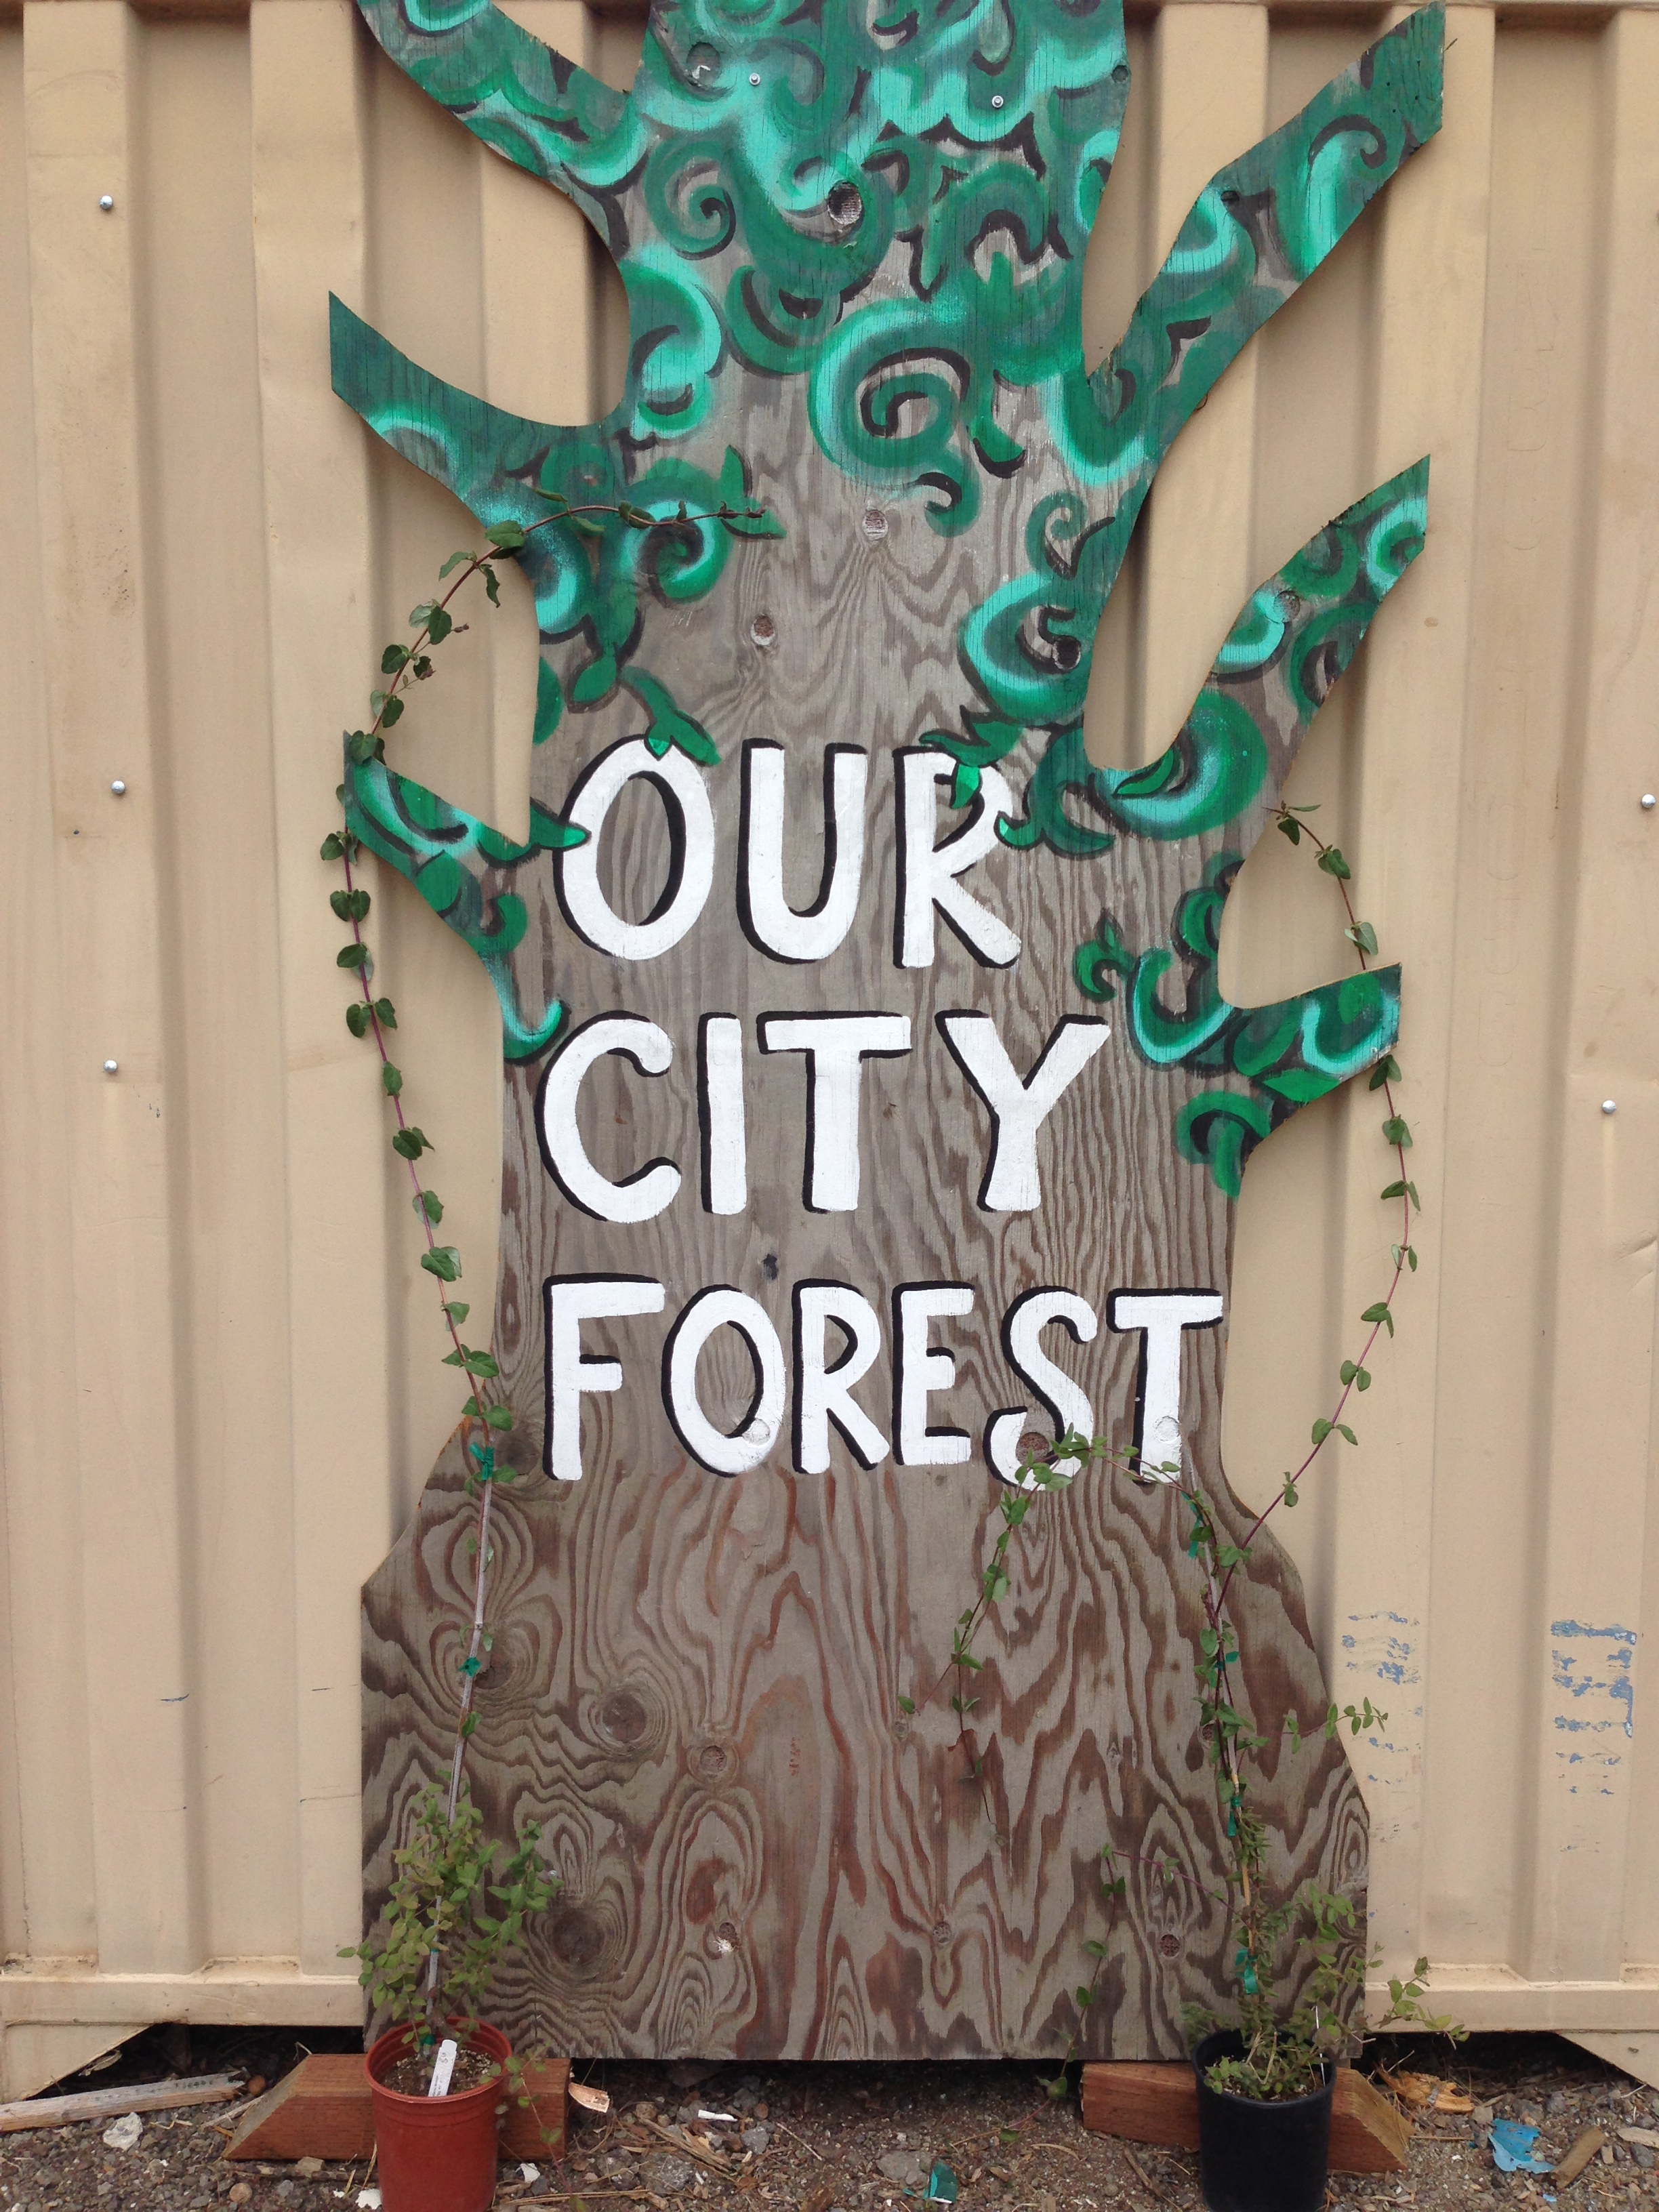 COMMUNITY ART INSTALLATION AT THE OCF NURSERY FOR PEOPLE TO ADD THEIR PERSONALIZED TREE WISH.